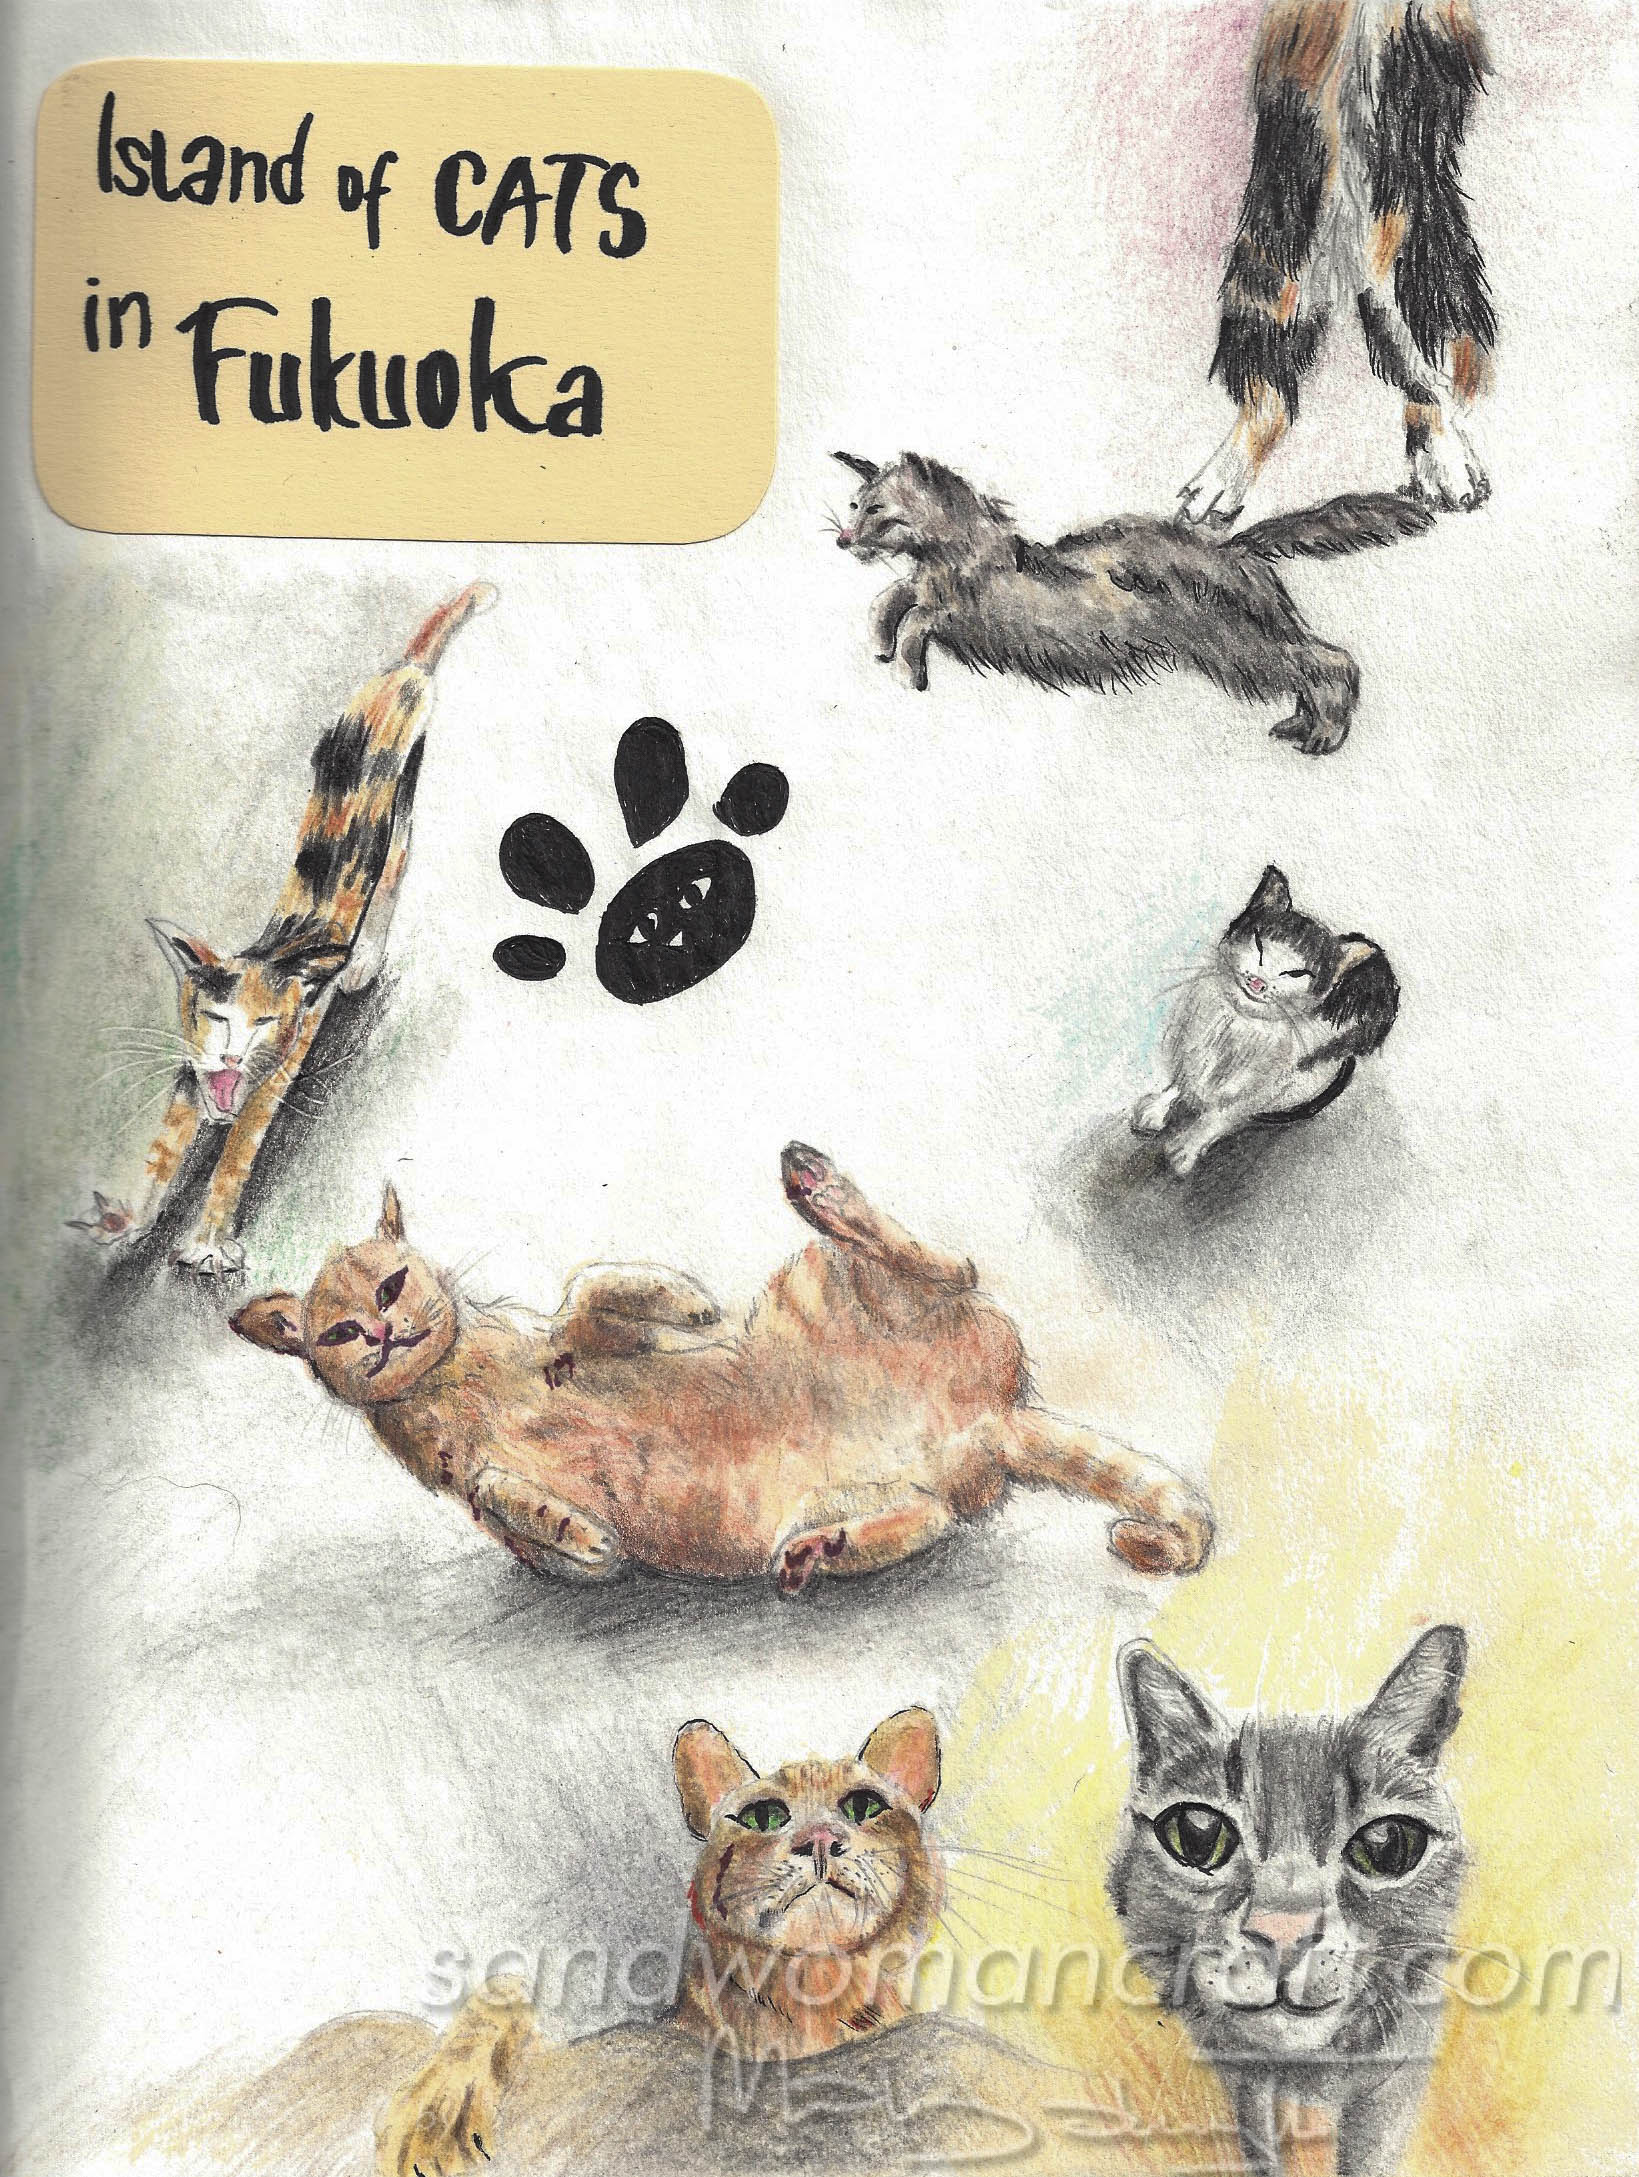 Island of cats in Fukuoka